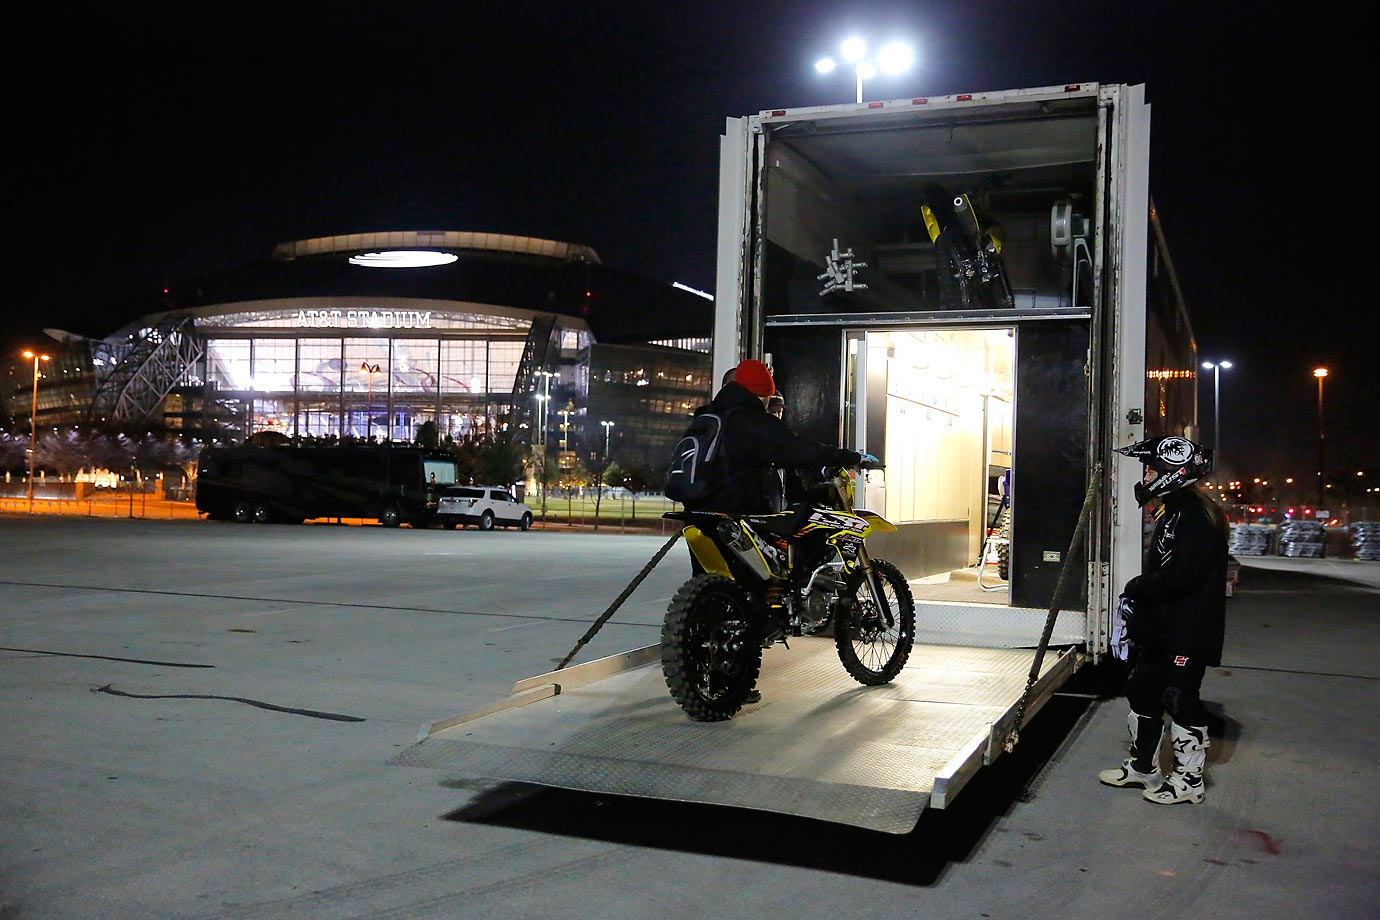 Golden prepares her bike to go for predawn practice runs at the AT&T Stadium.